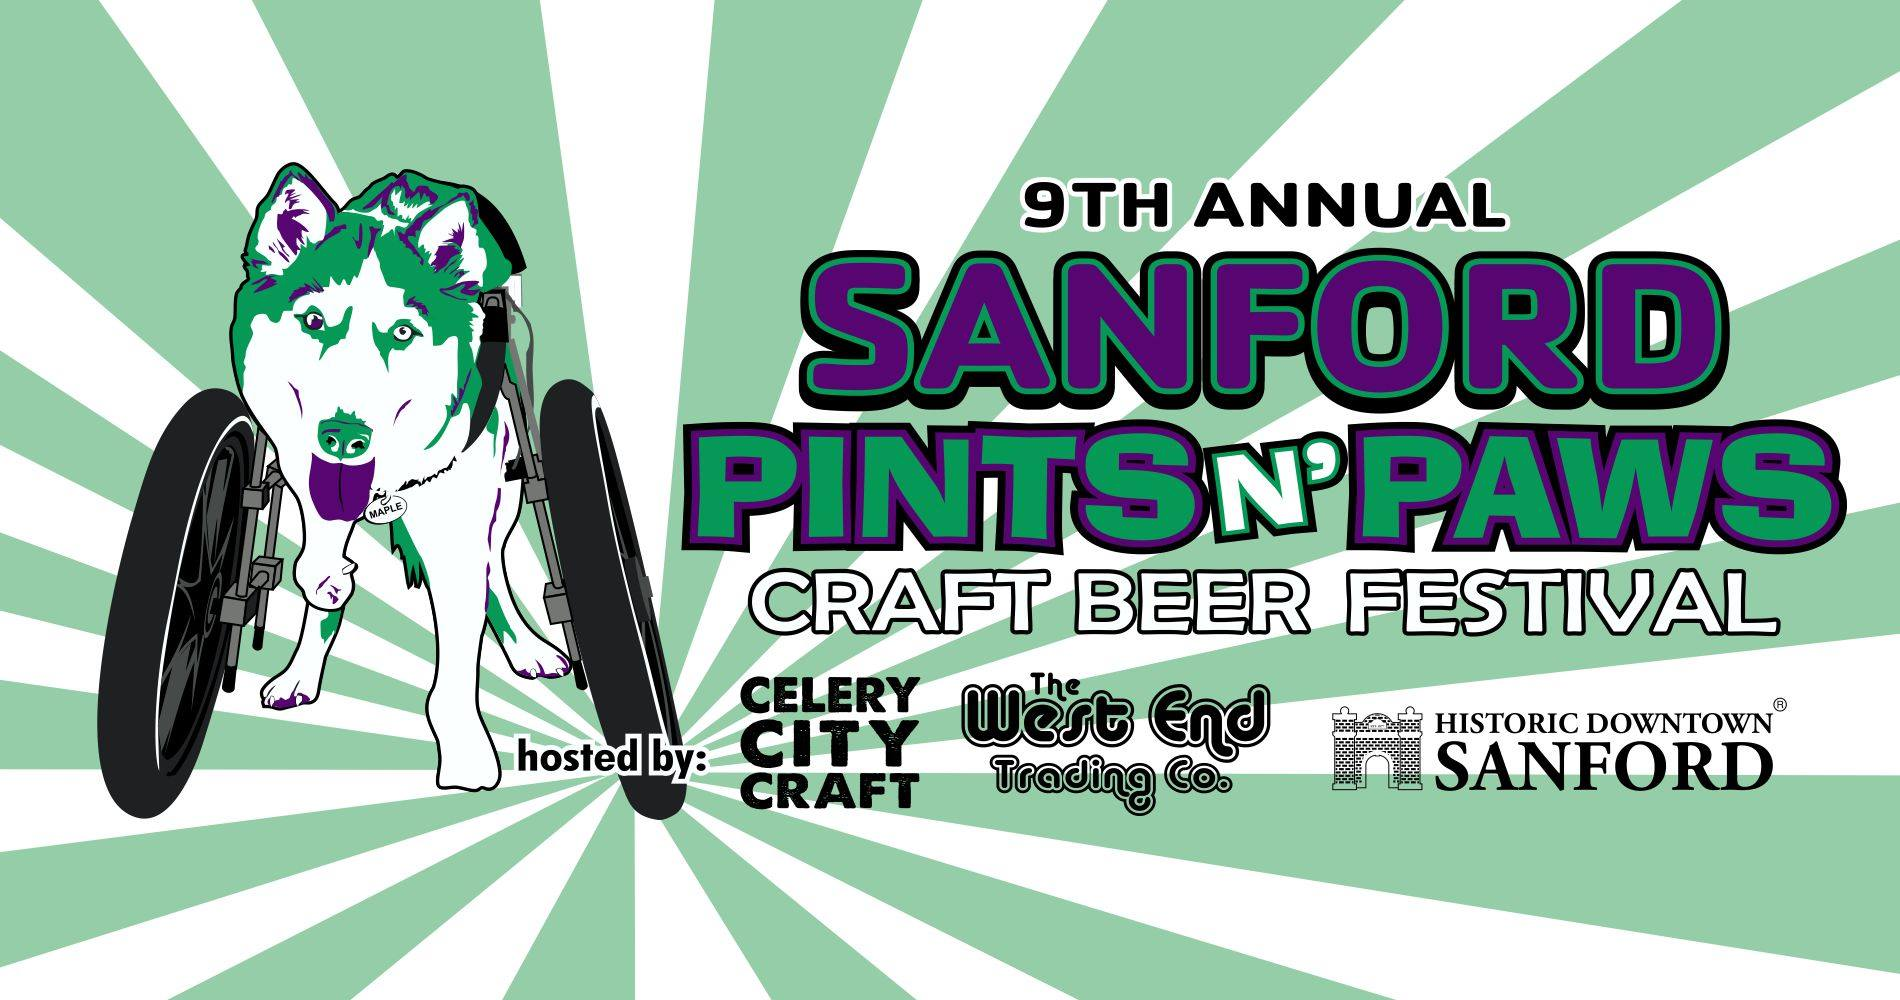 9th Annual Pints n' Paws Craft Beer Festival